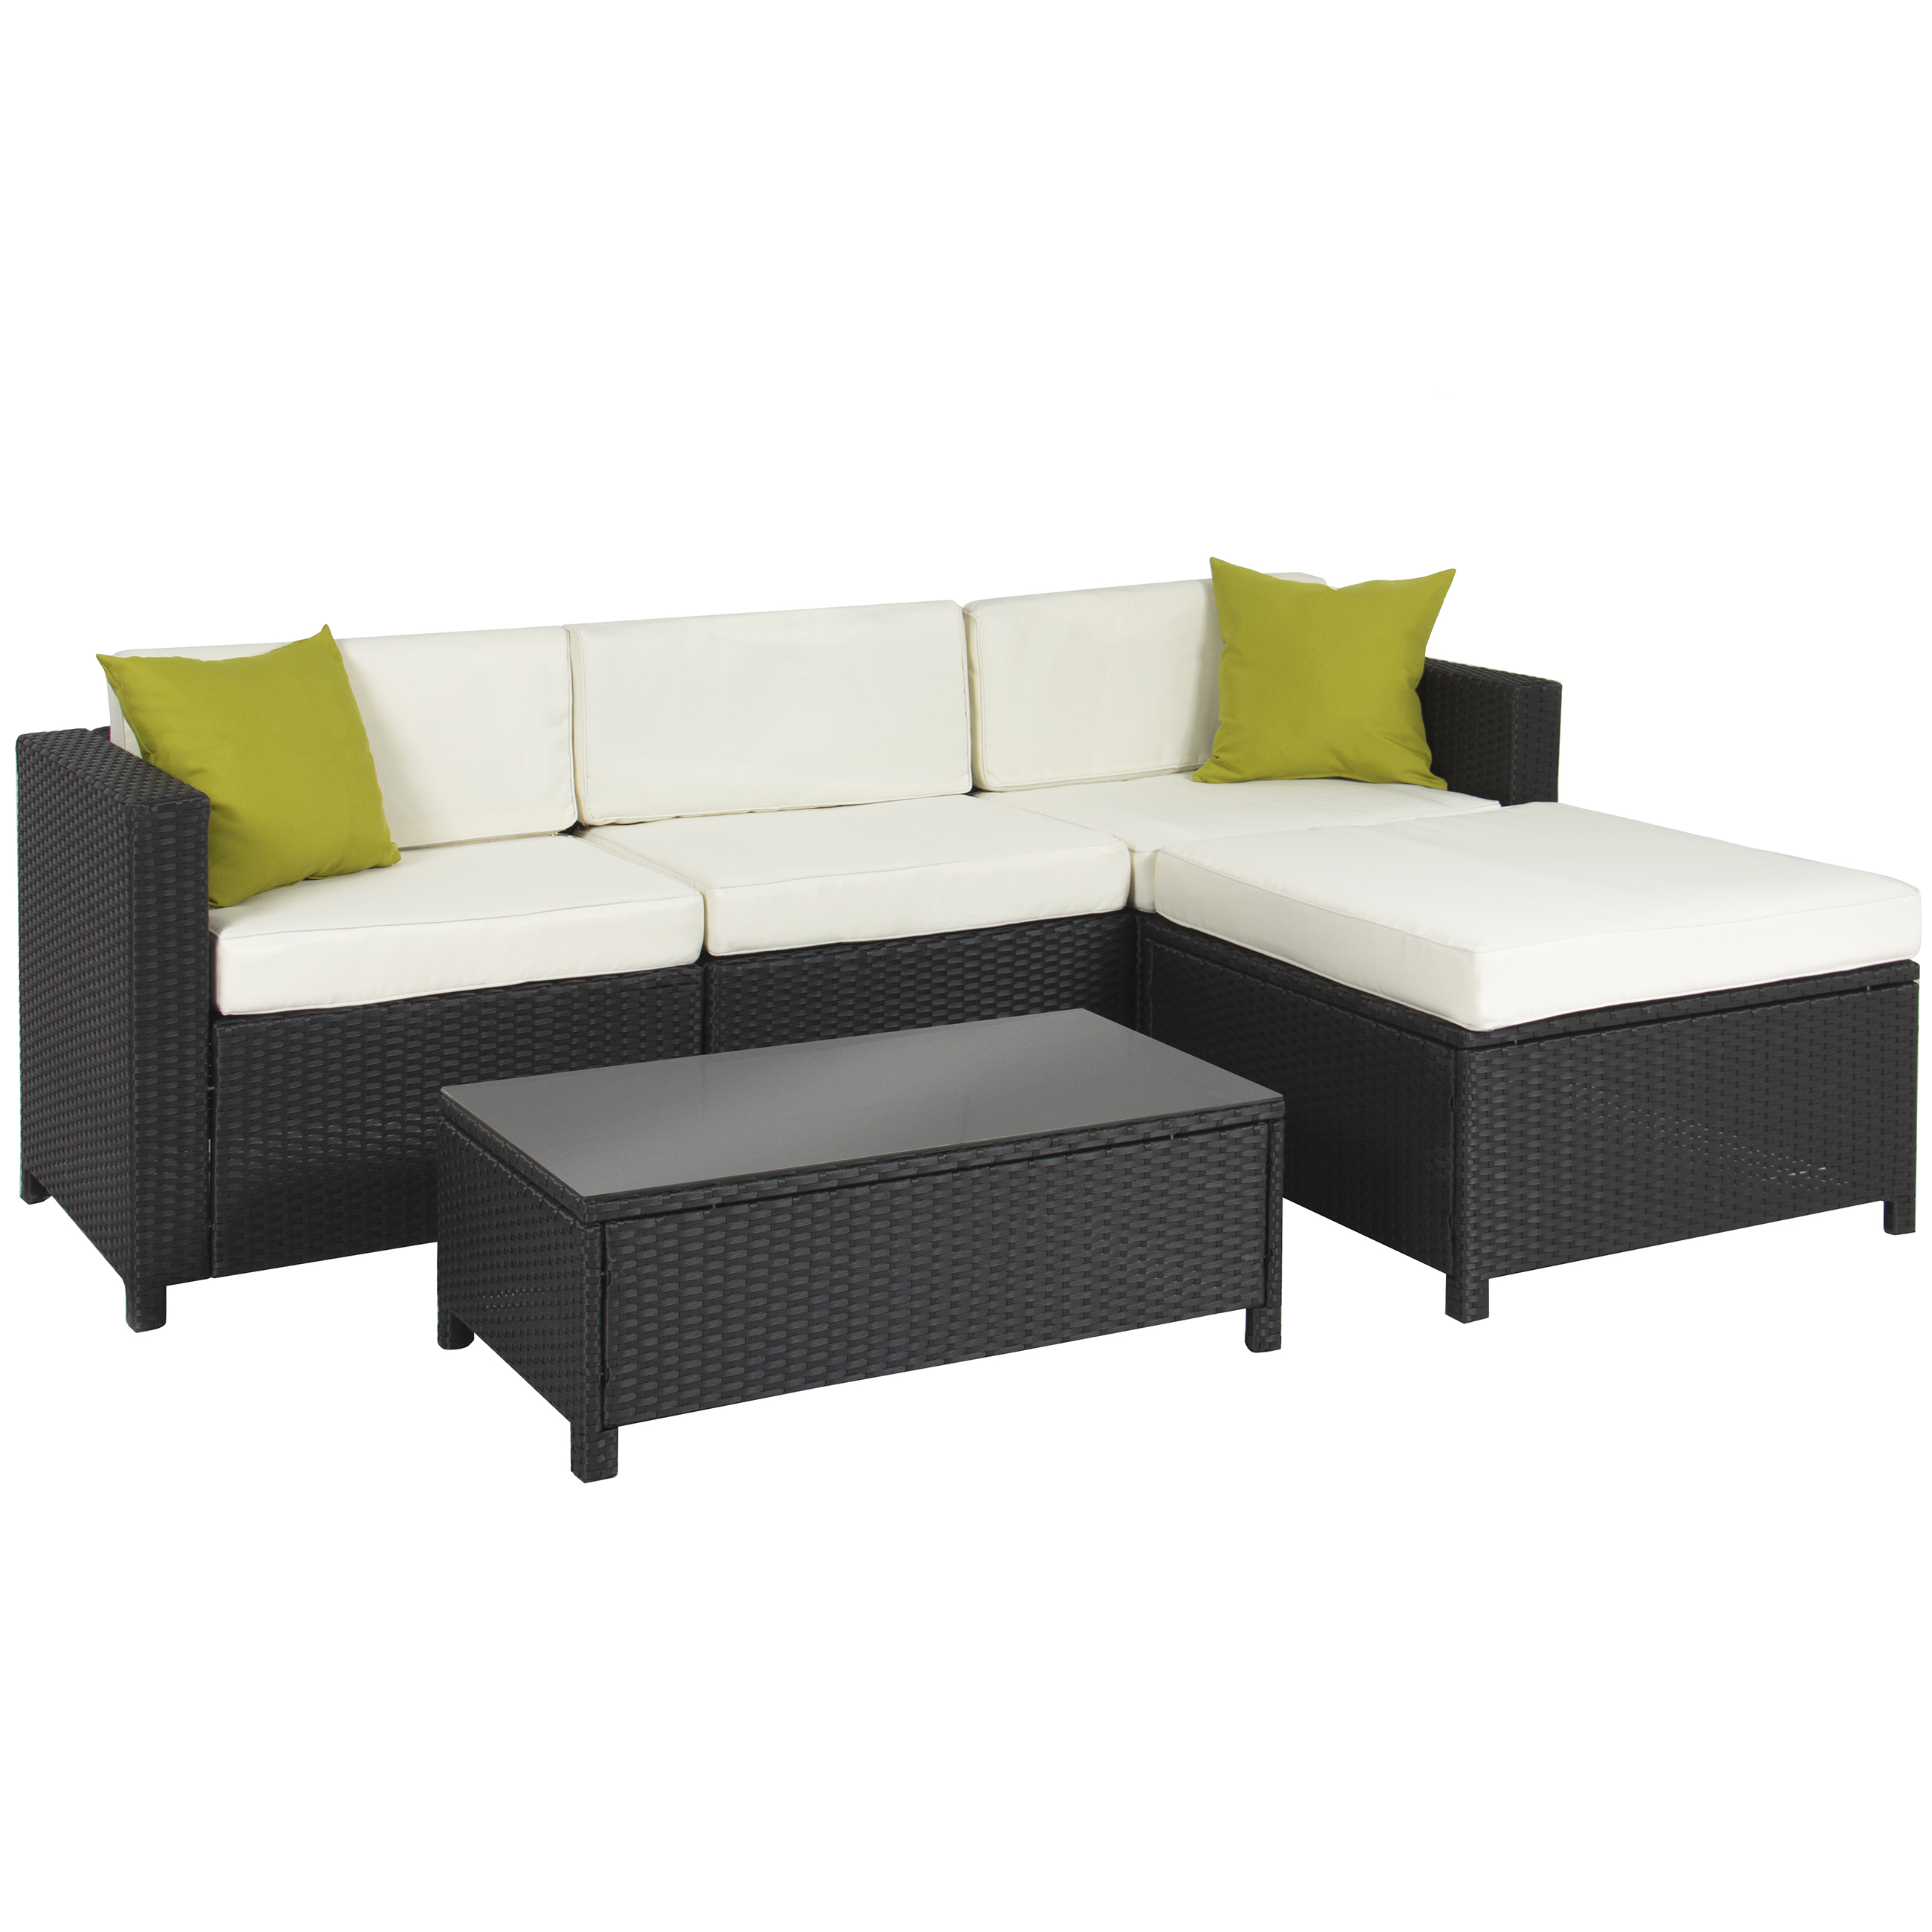 Collection outdoor couch outdoor patio furniture cushioned 5pc rattan wicker aluminum frame  sectional sofa set hdunbtn